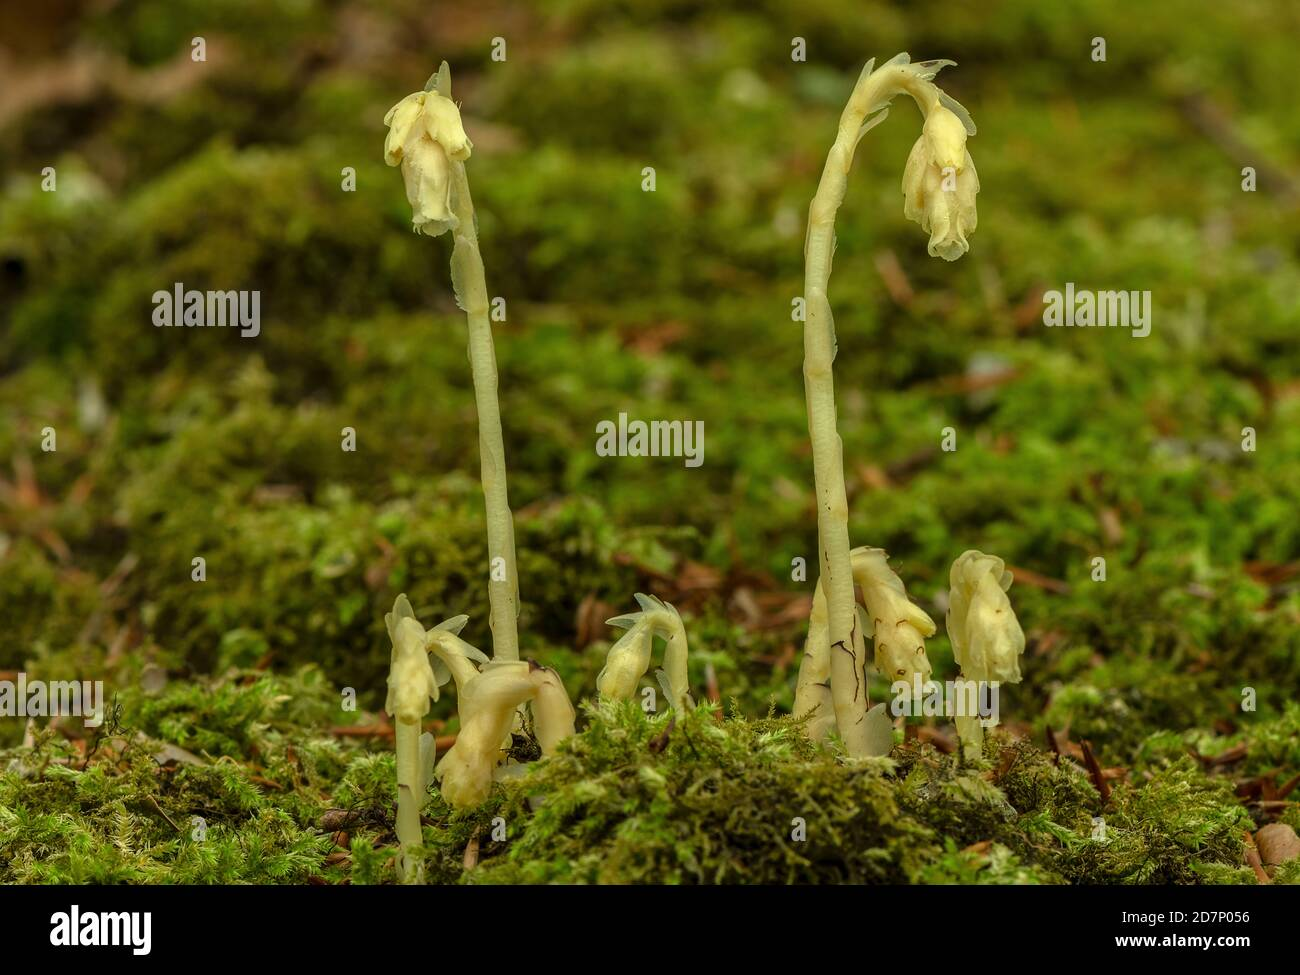 Clumps of Yellow bird's-nest, Hypopitys monotropa, in flower in beech woodland, plantation; Dorset. Stock Photo